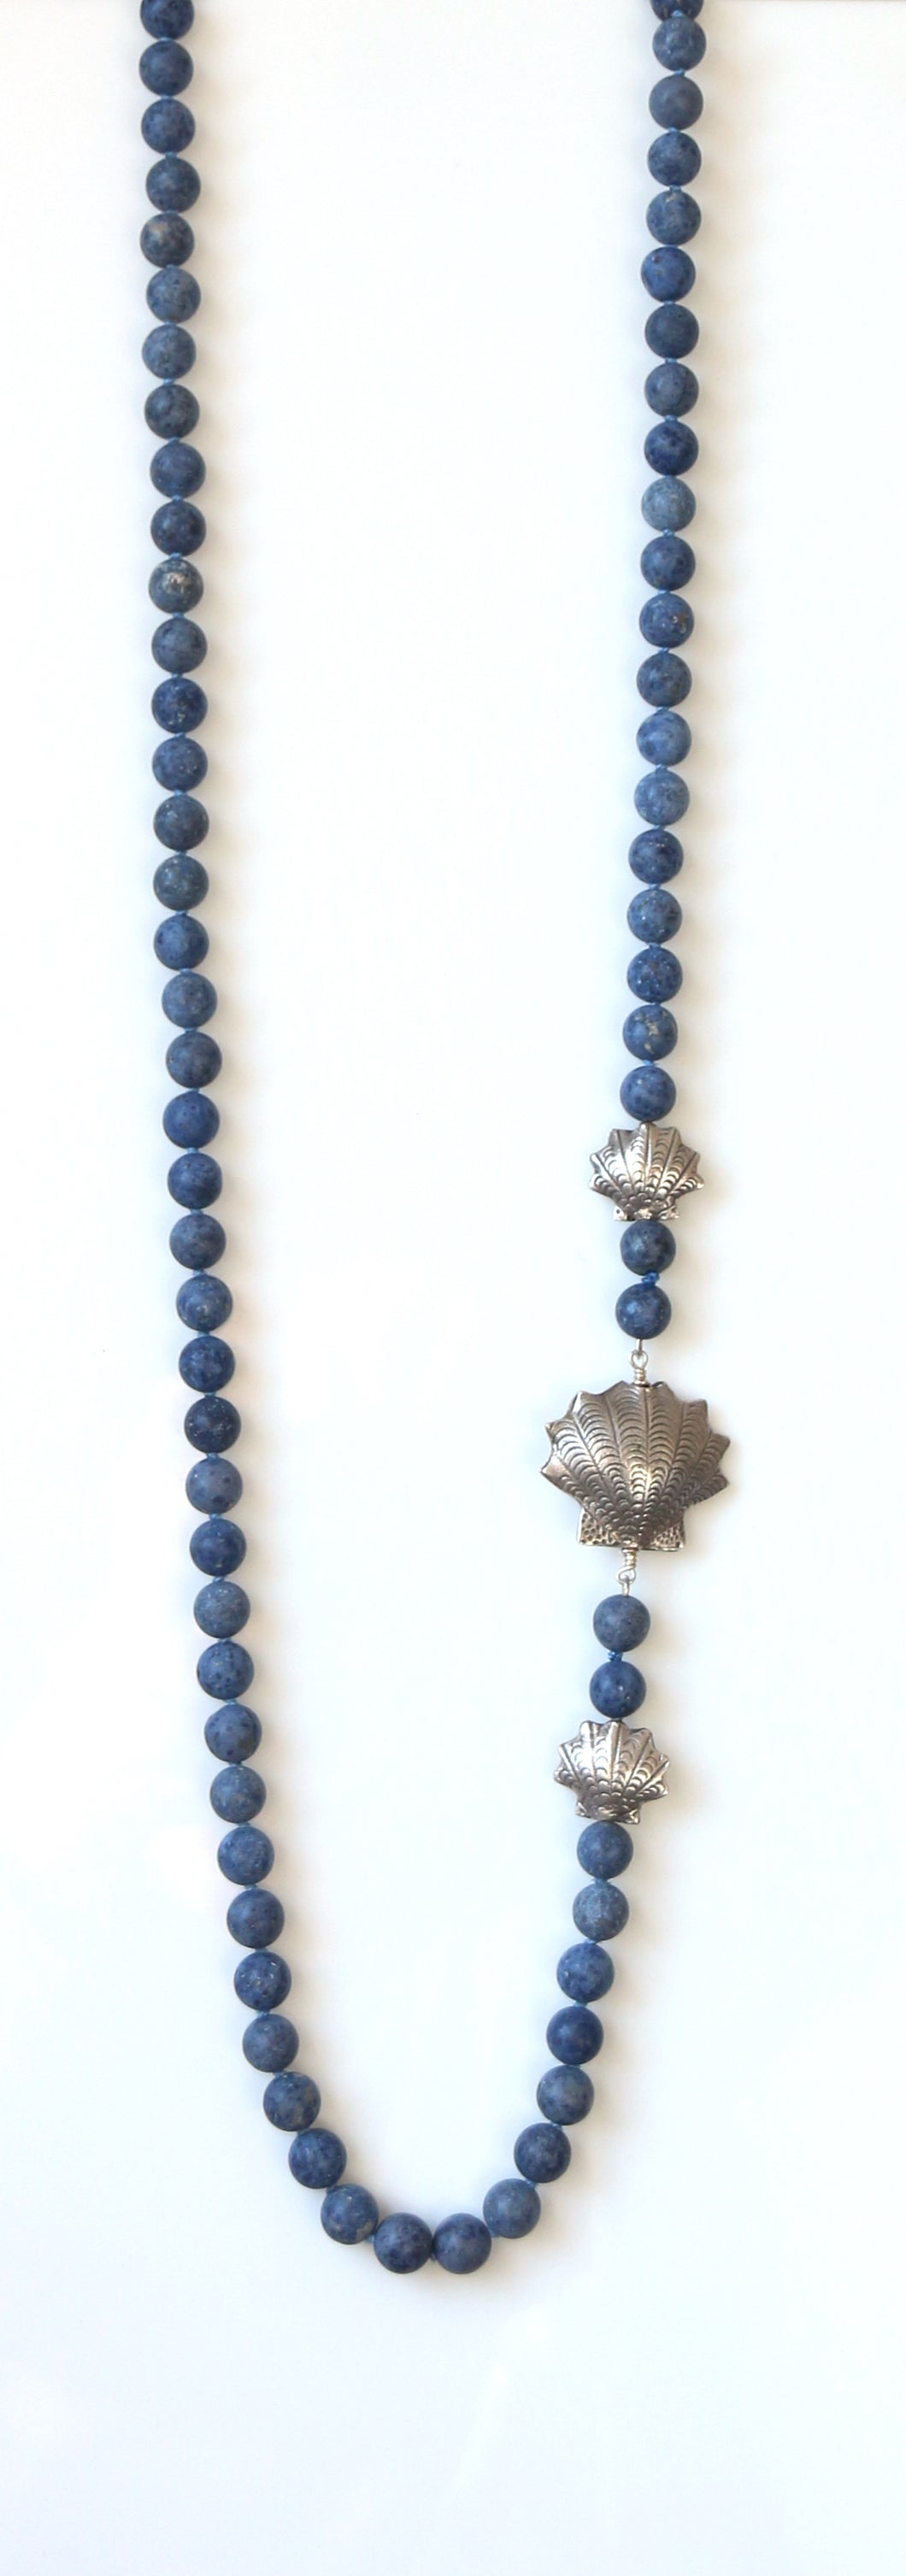 Australian Handmade Blue Necklace with Dumortierite and Sterling Silver Side Pieces